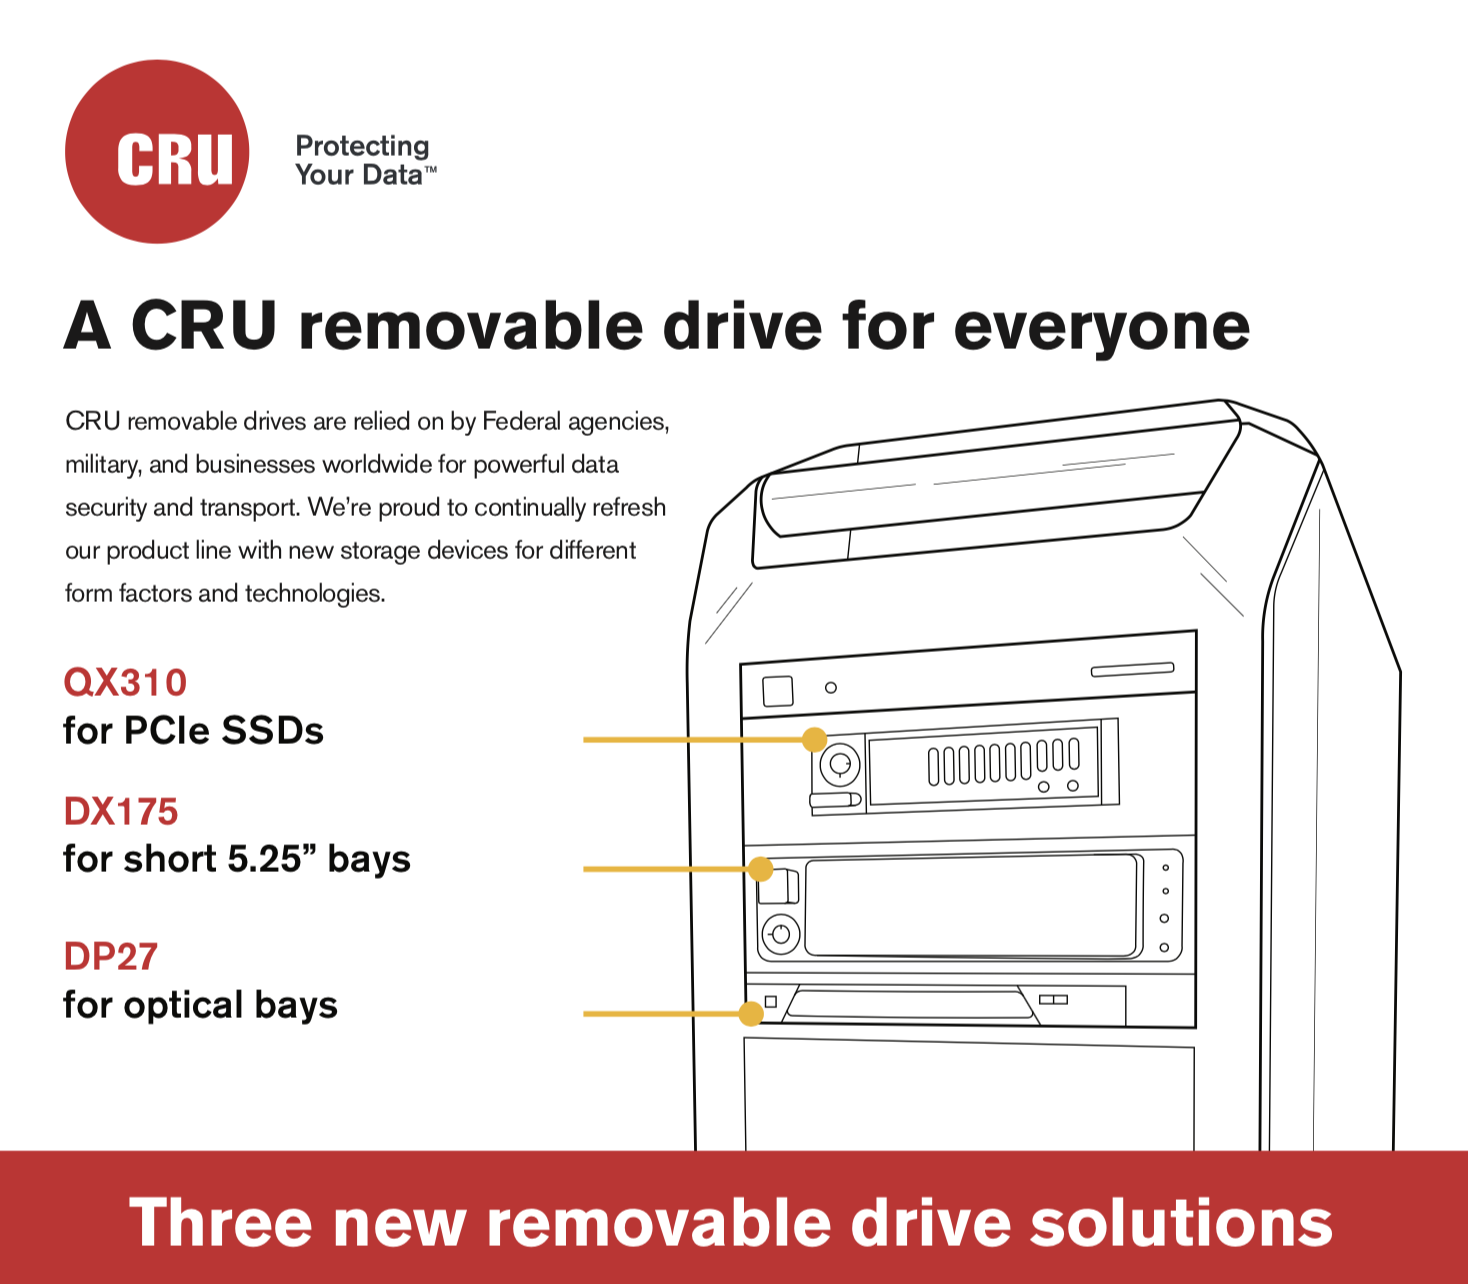 A_CRU_Removable_Drive_for_Everyone